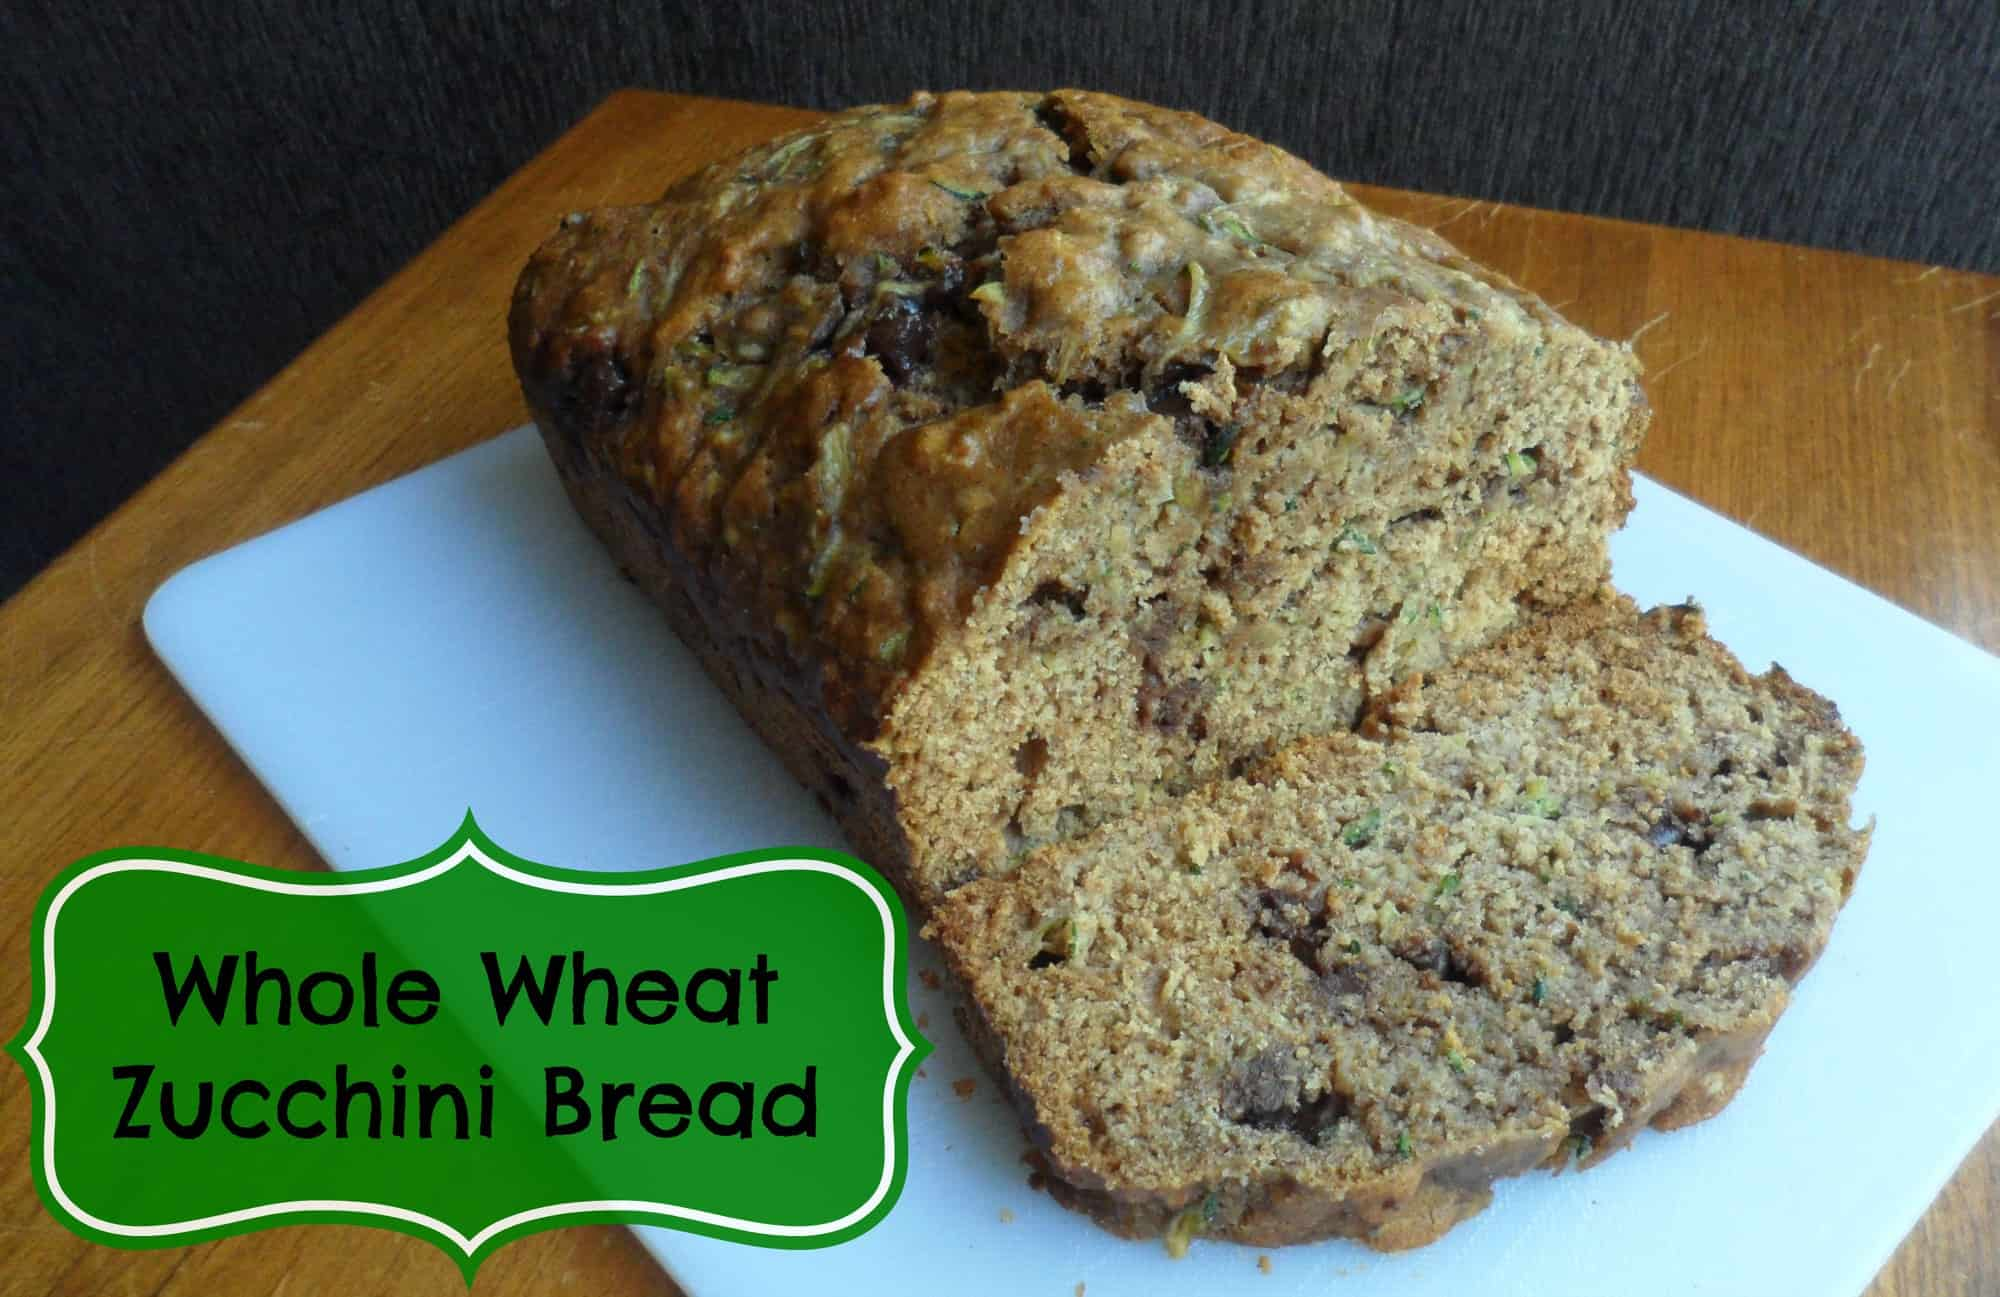 Whole Wheat Chocolate Chip Zucchini Bread recipe